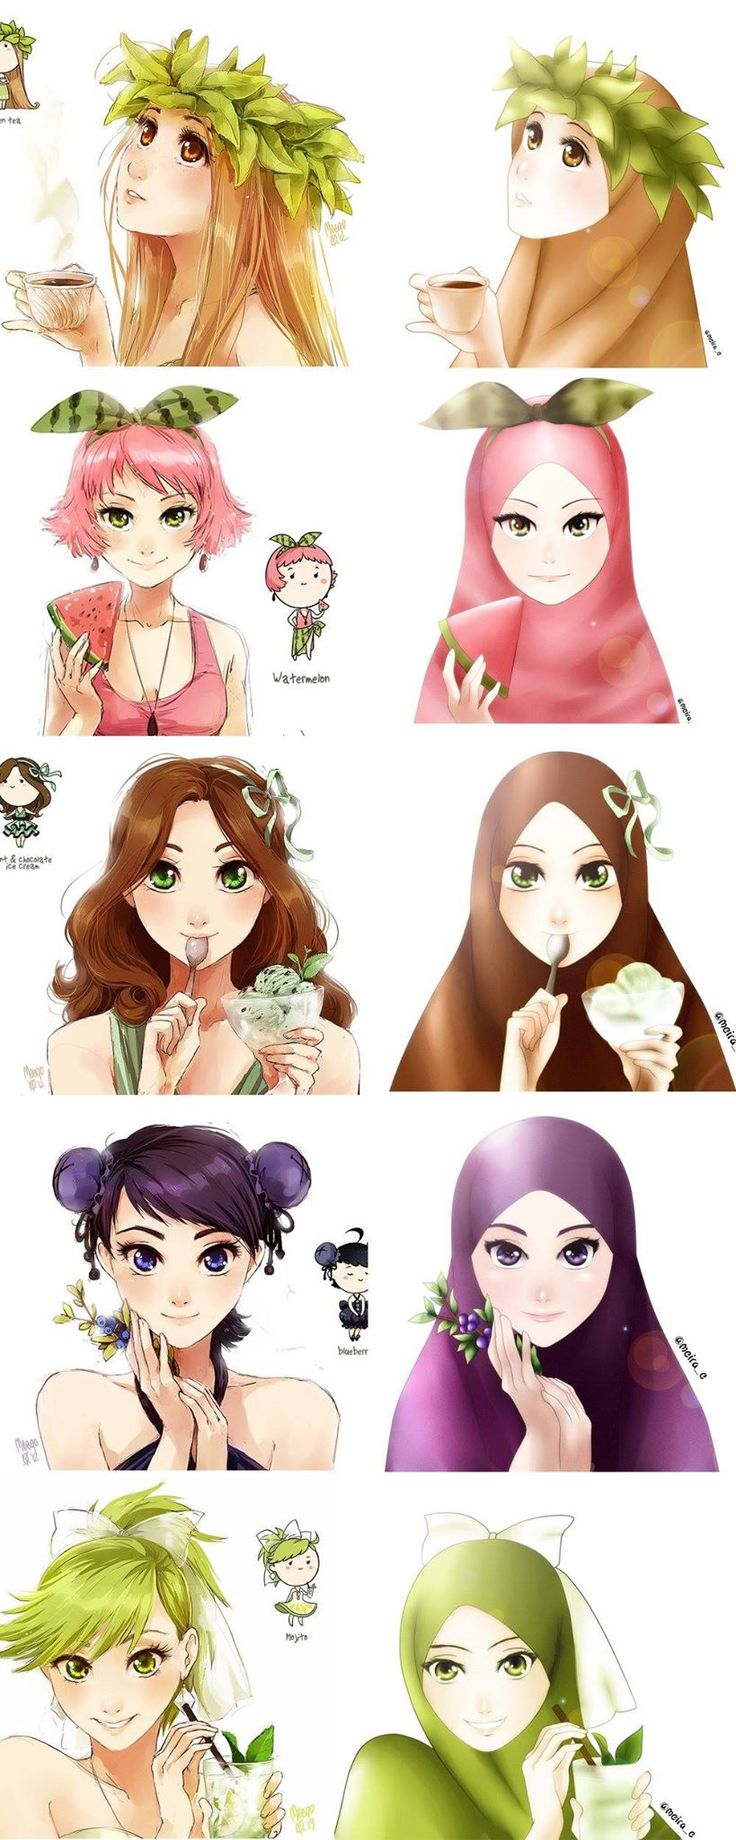 17 Best Images About Muslim Anime On Pinterest Muslim Women Web